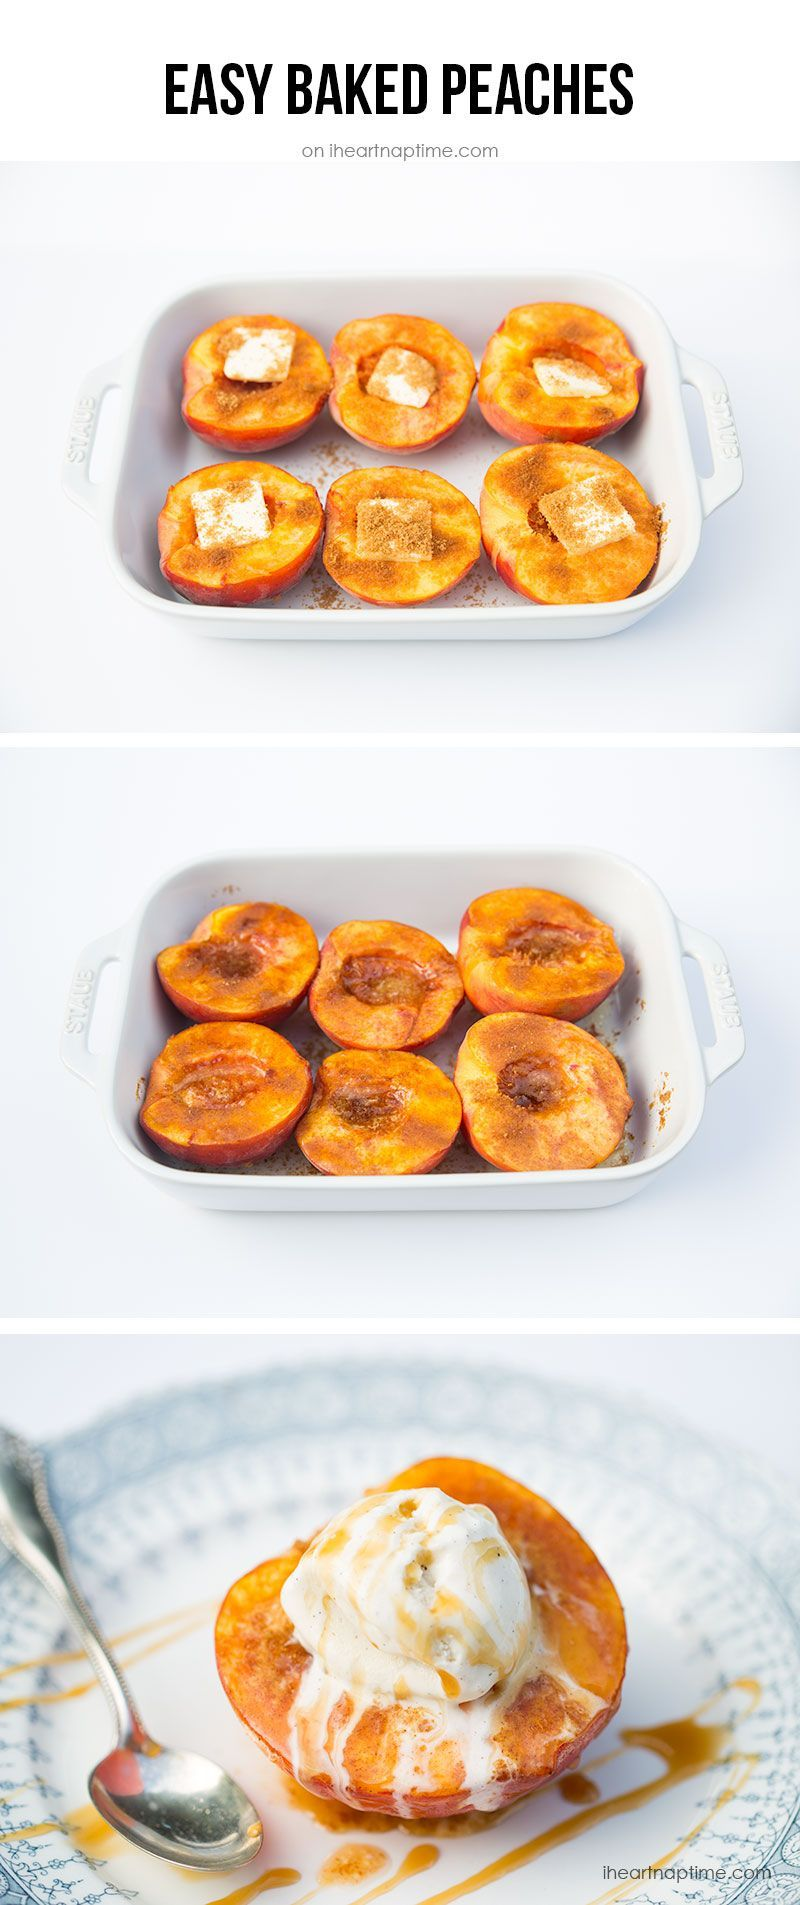 Easy Baked Peaches with Cinnamon Sugar Topping These super moist and tender peach upside down mini cakes are bursting with peaches in every bite. Easy to make, this recipe is a keeper for that indulgent peach season! #brownsugar